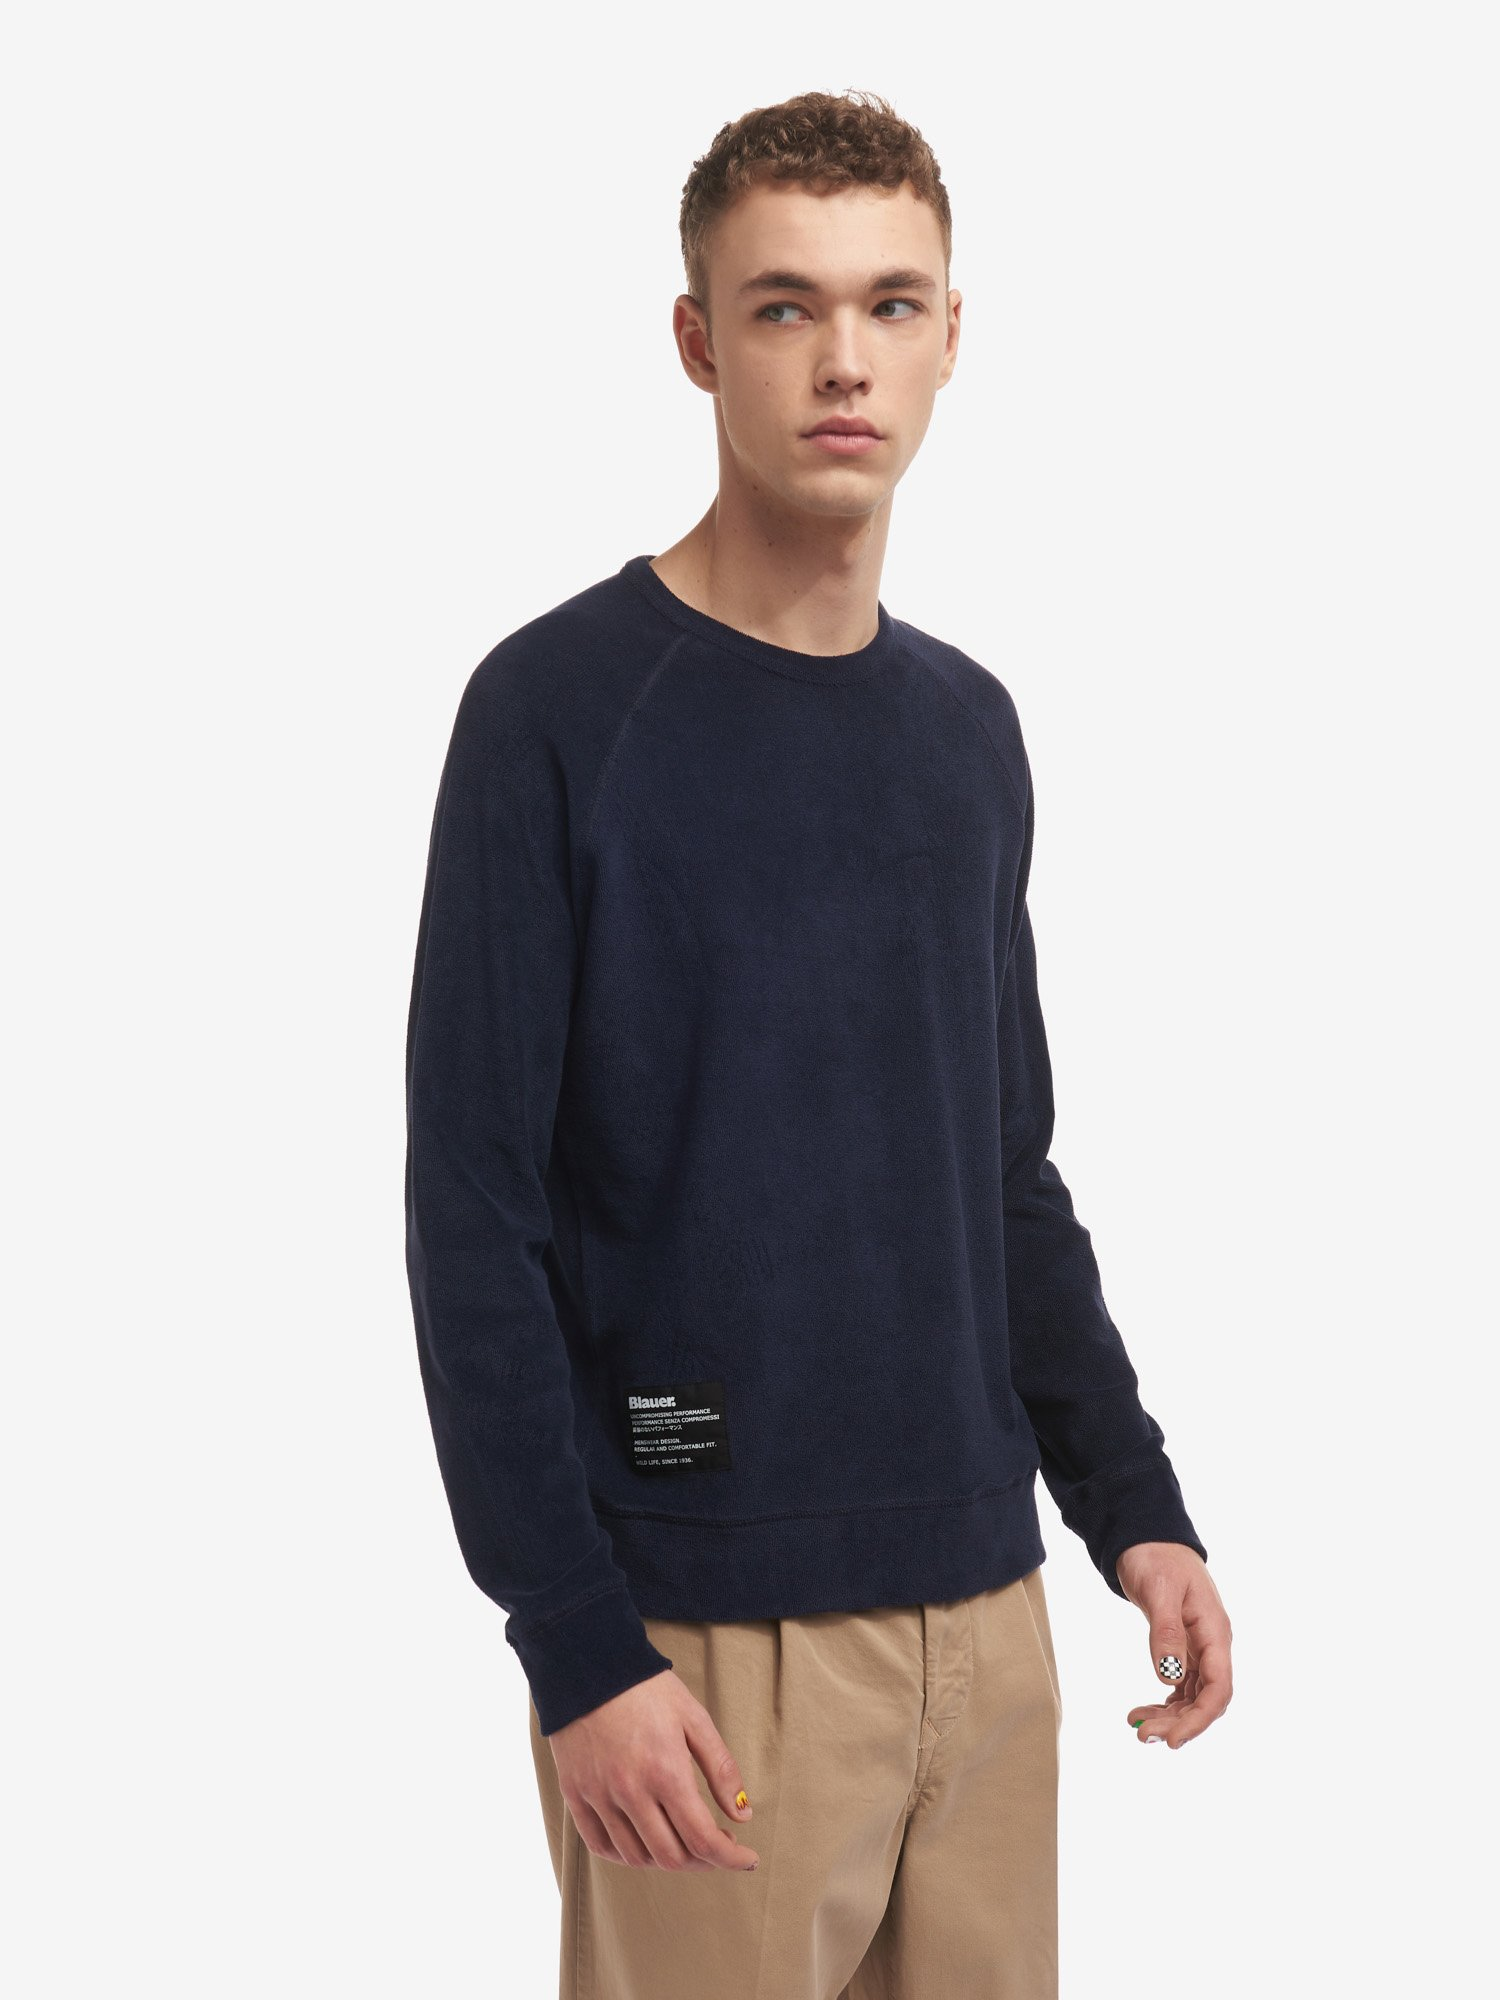 Blauer - CREW NECK SWEATSHIRT IN COTTON TERRY - Dark Sapphire - Blauer